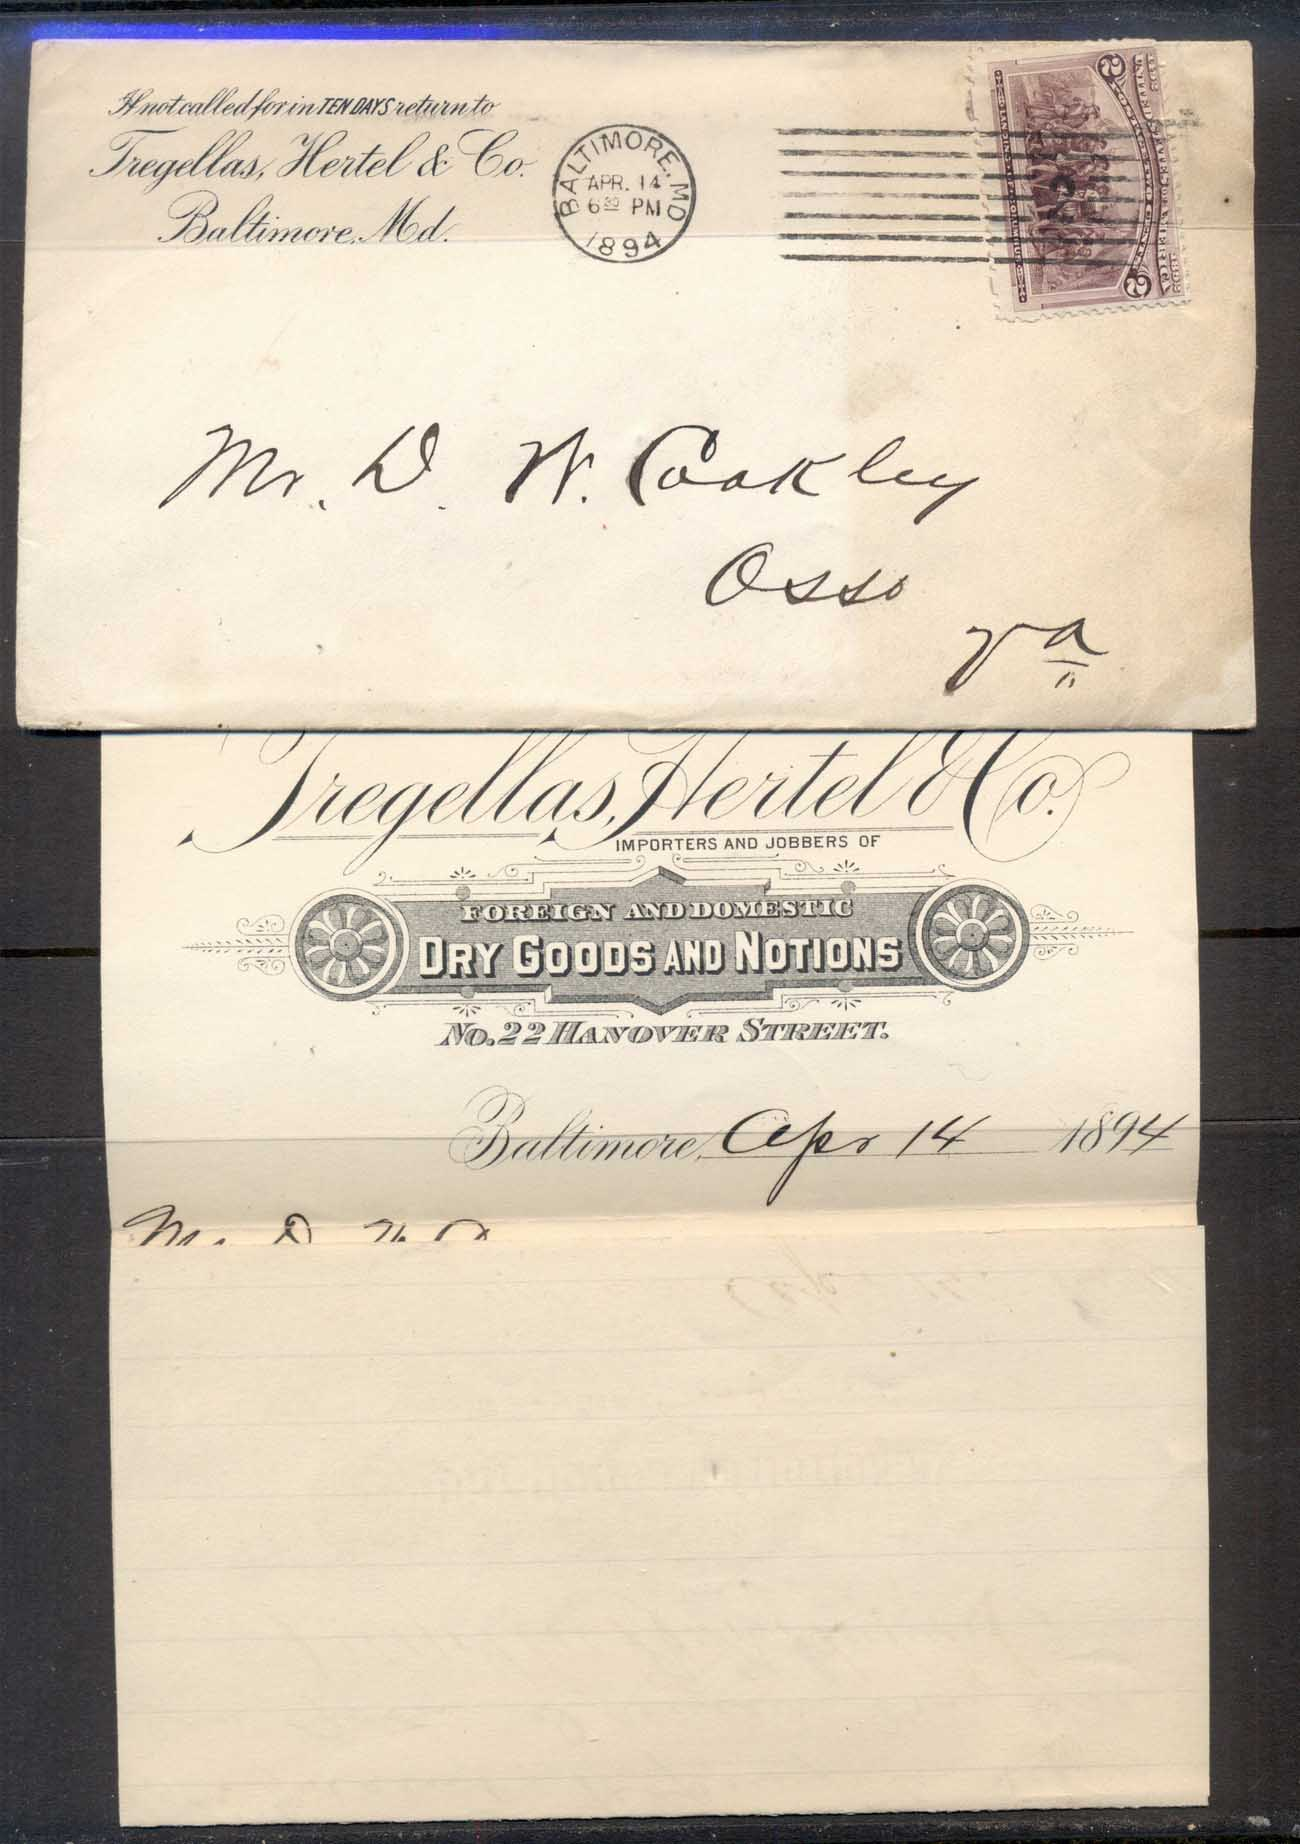 USA 1894 2c Columbian CC Cover with enclosure